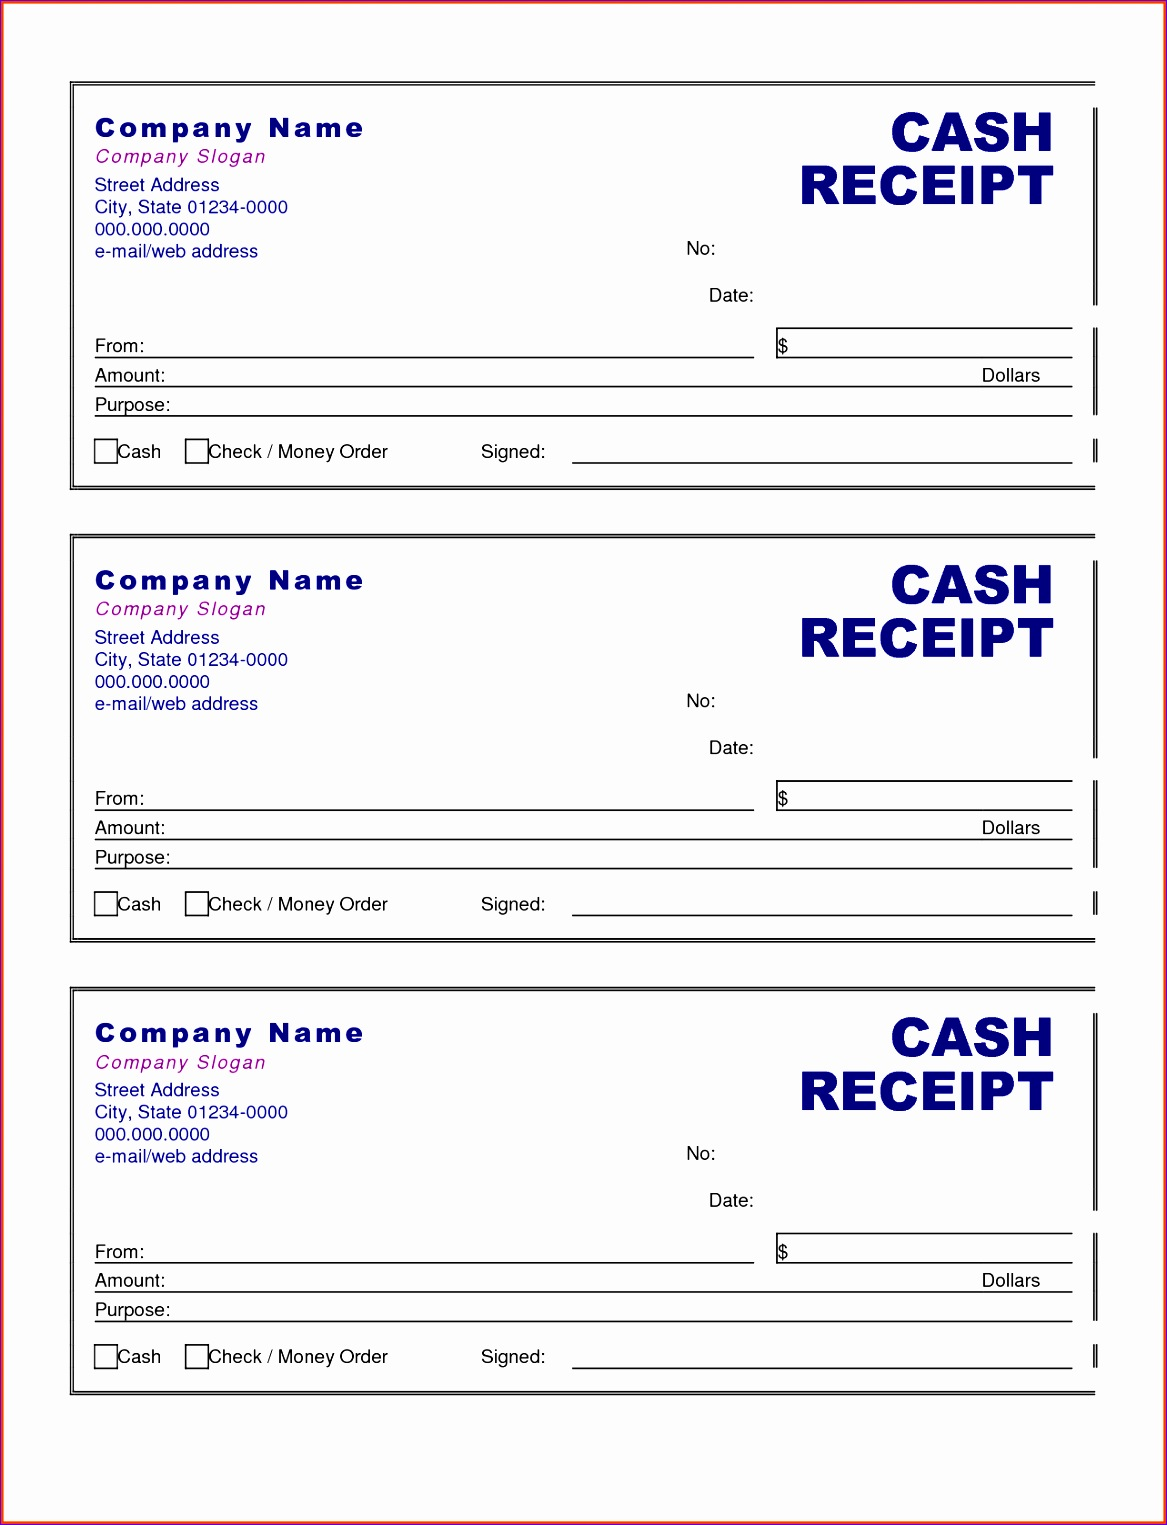 Excel Cash Receipt Template Okfes Inspirational All Cash Receipts Game Google Family Feud 12831658